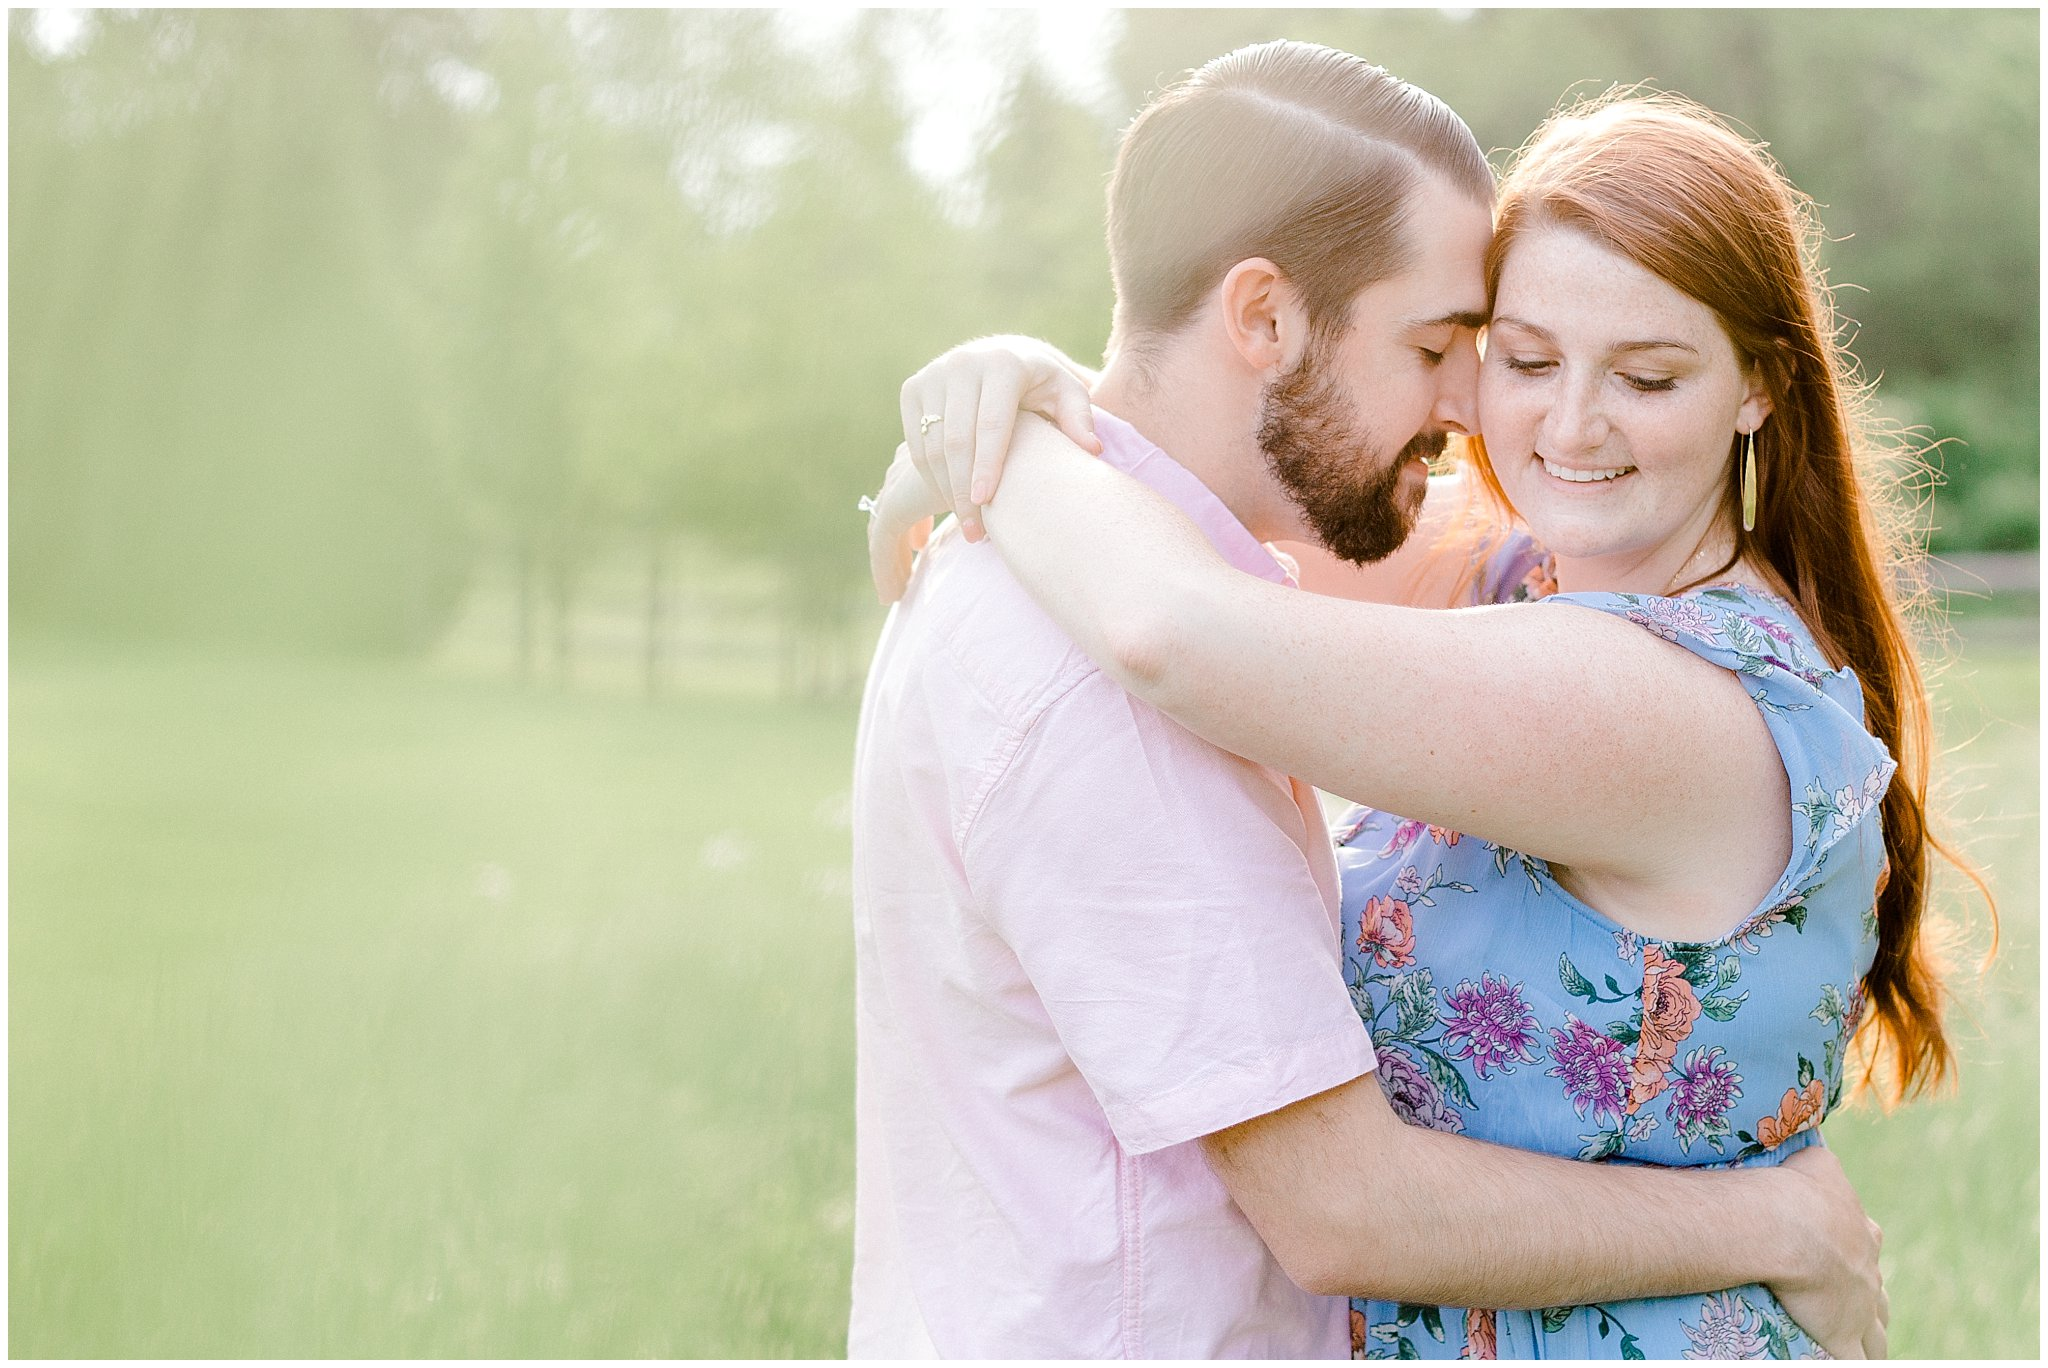 Manor house at prophecy Creek Blue Bell PA wedding venue summertime field engagement session lehigh valley based wedding and lifestyle photographe_0021.jpg